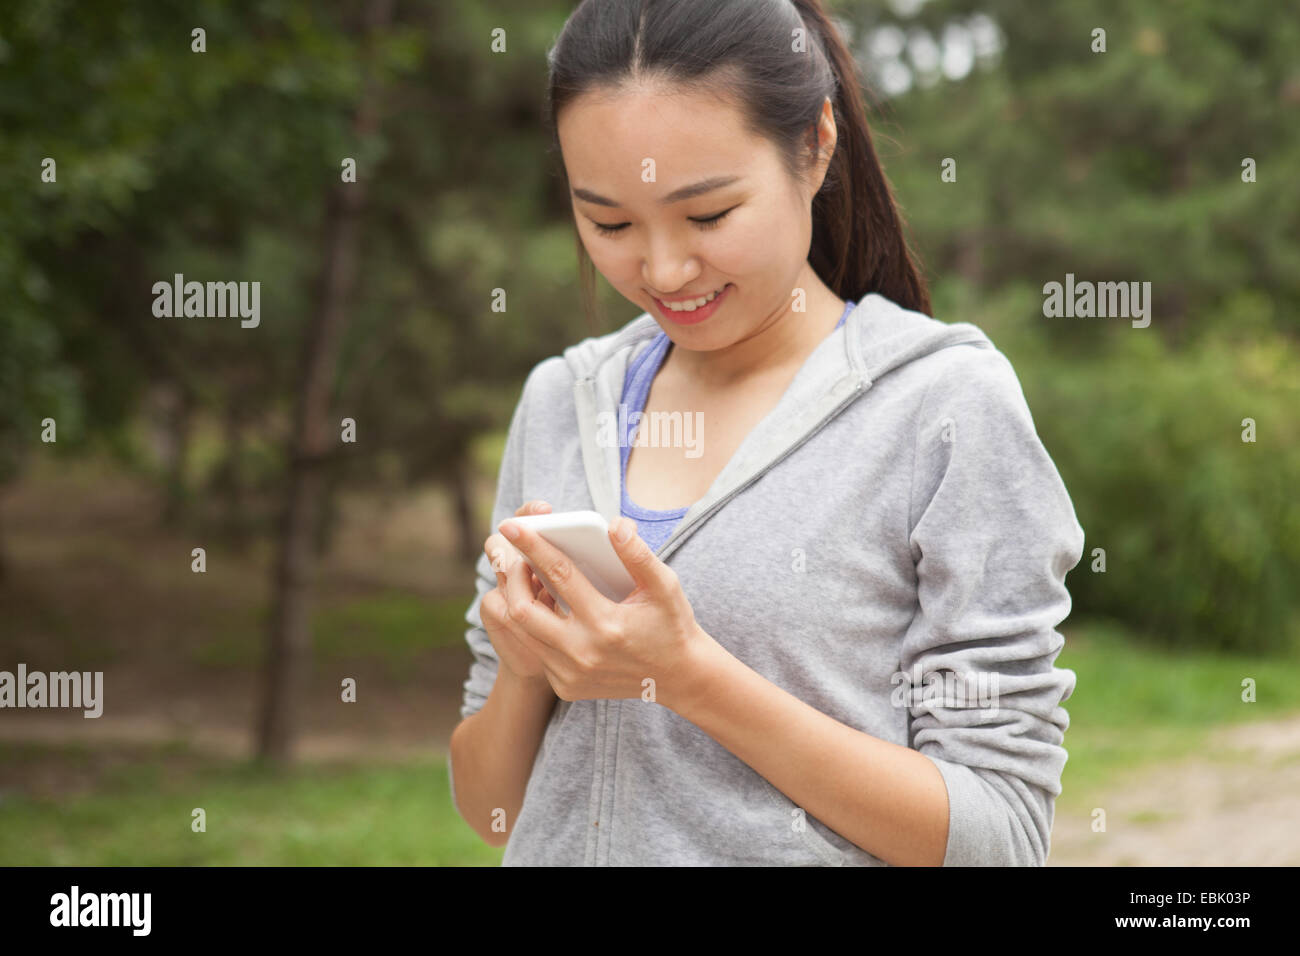 Young female runner selecting music from smartphone in park - Stock Image